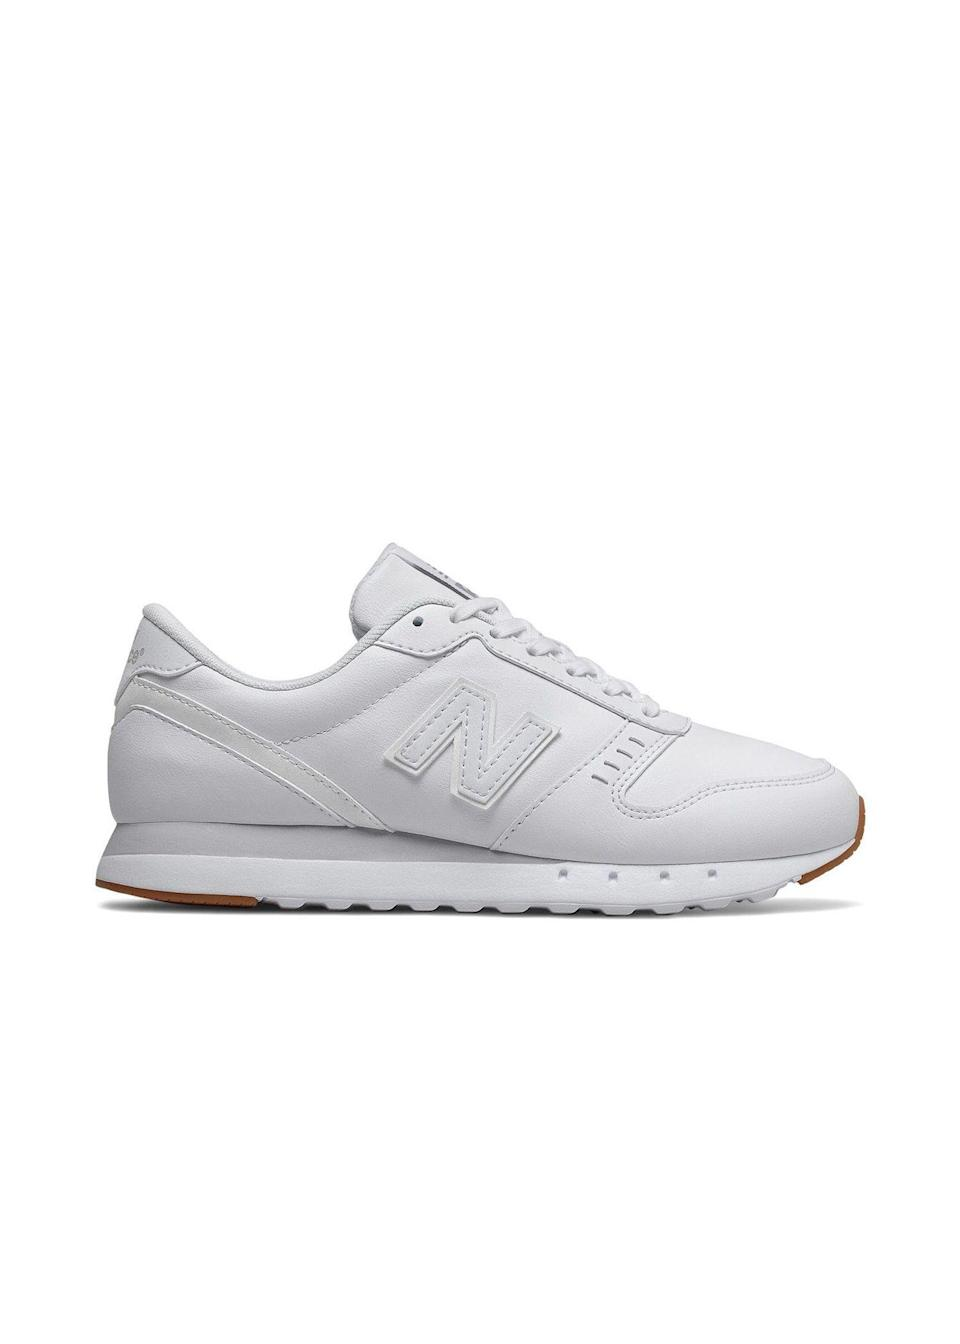 "<p><strong>New Balance</strong></p><p>kohls.com</p><p><strong>$48.74</strong></p><p><a href=""https://go.redirectingat.com?id=74968X1596630&url=https%3A%2F%2Fwww.kohls.com%2Fproduct%2Fprd-3918997%2Fnew-balance-311-v2-womens-sneakers.jsp&sref=https%3A%2F%2Fwww.seventeen.com%2Ffashion%2Ftrends%2Fg32826210%2Fclassic-white-sneakers%2F"" rel=""nofollow noopener"" target=""_blank"" data-ylk=""slk:Shop Now"" class=""link rapid-noclick-resp"">Shop Now</a></p><p>The perfect pair of shoes to go with all those sweatsuits you've been wearing on repeat? Vintage-inspired New Balance white sneakers, of course. Don't forget to wear white tube socks. </p>"